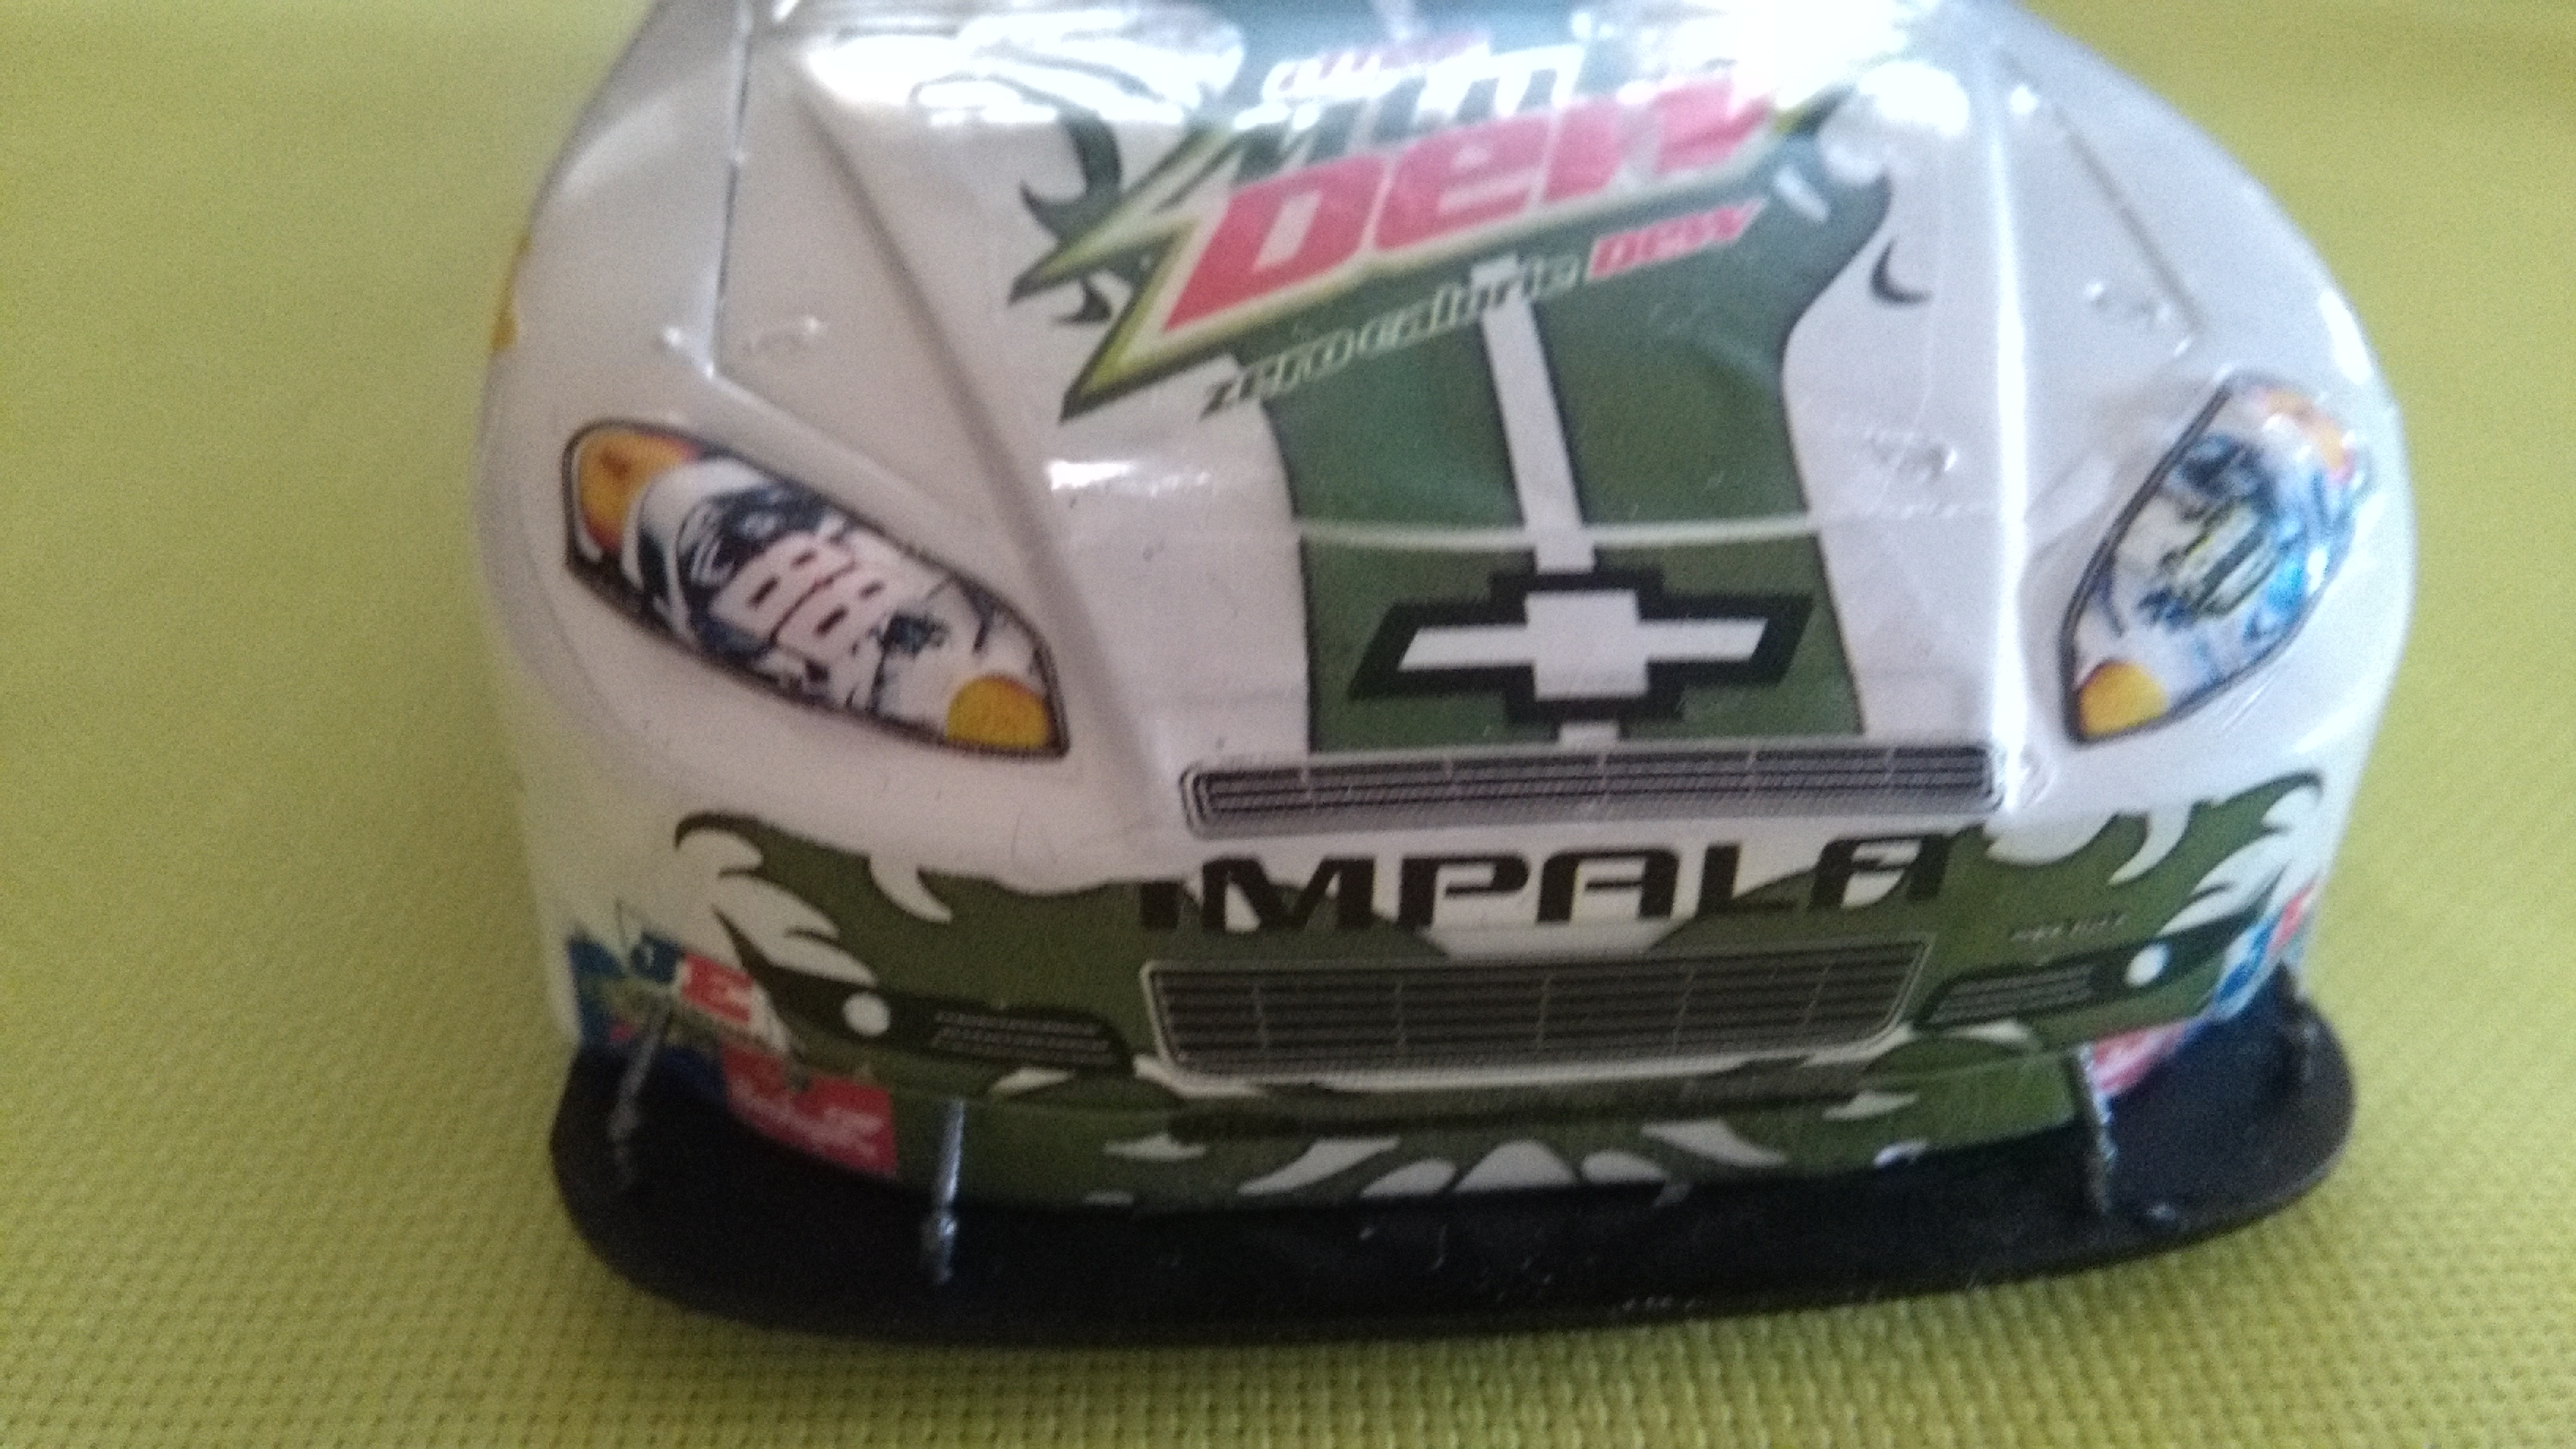 Chevy Impala 2010 #88 Earnhardt jr Mountain dew diet 613561IMG20160320150423